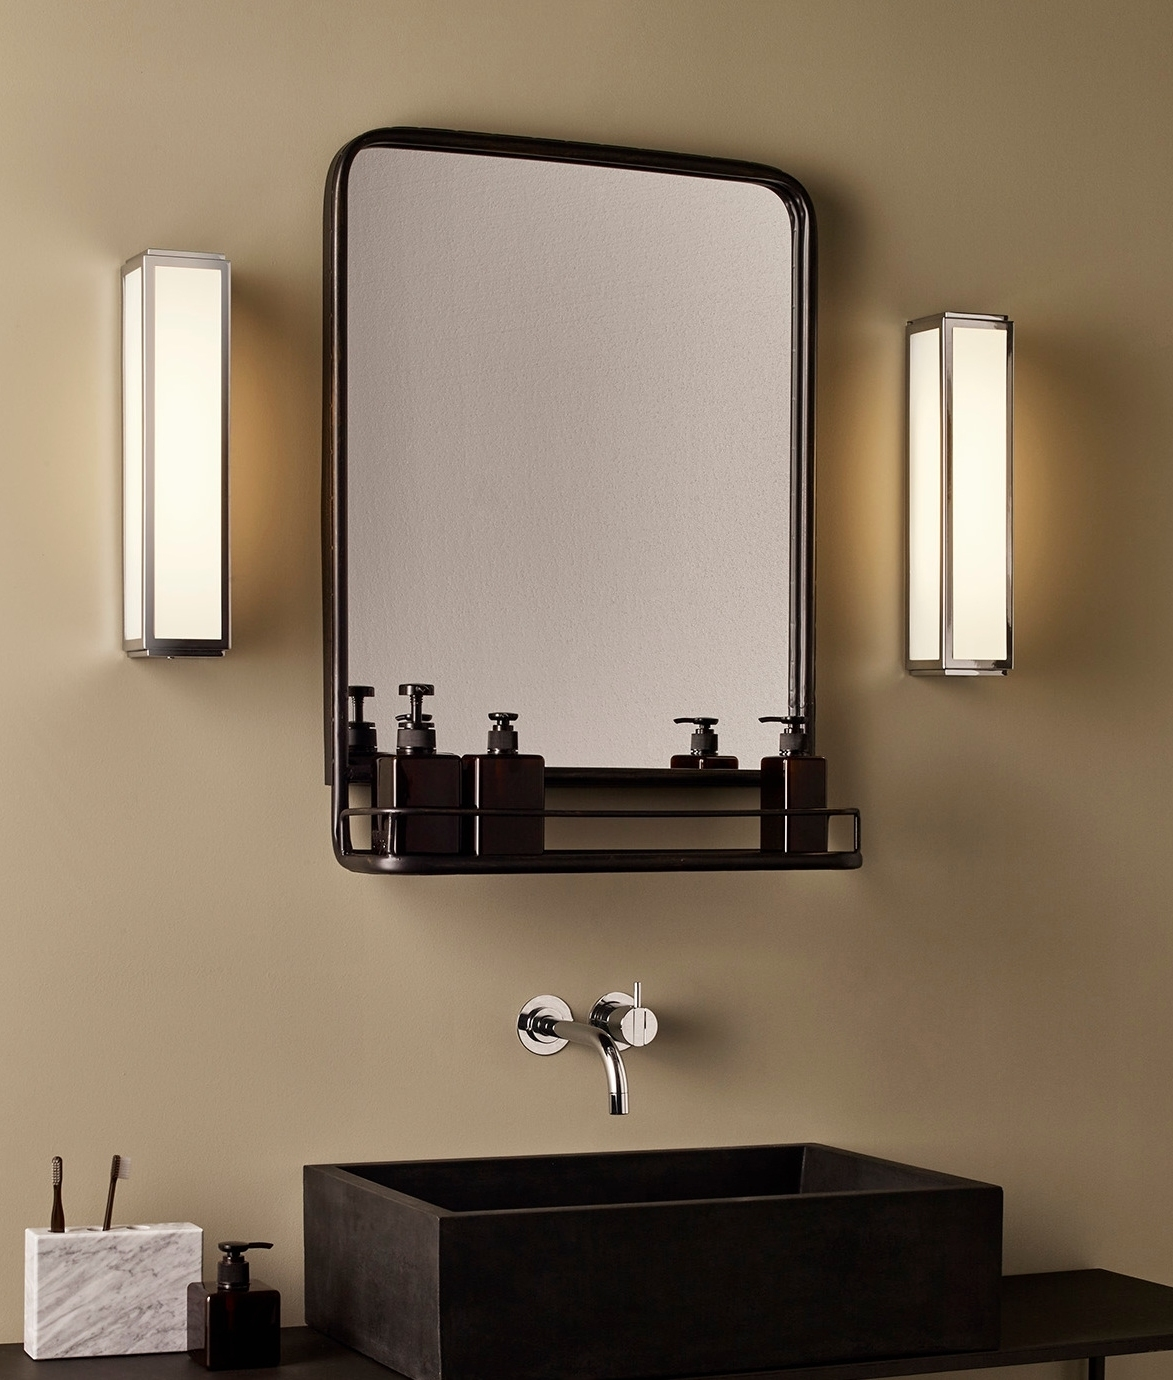 Bathroom Lights Art Deco: Stylish Low Energy Wall Light In Art Deco Style